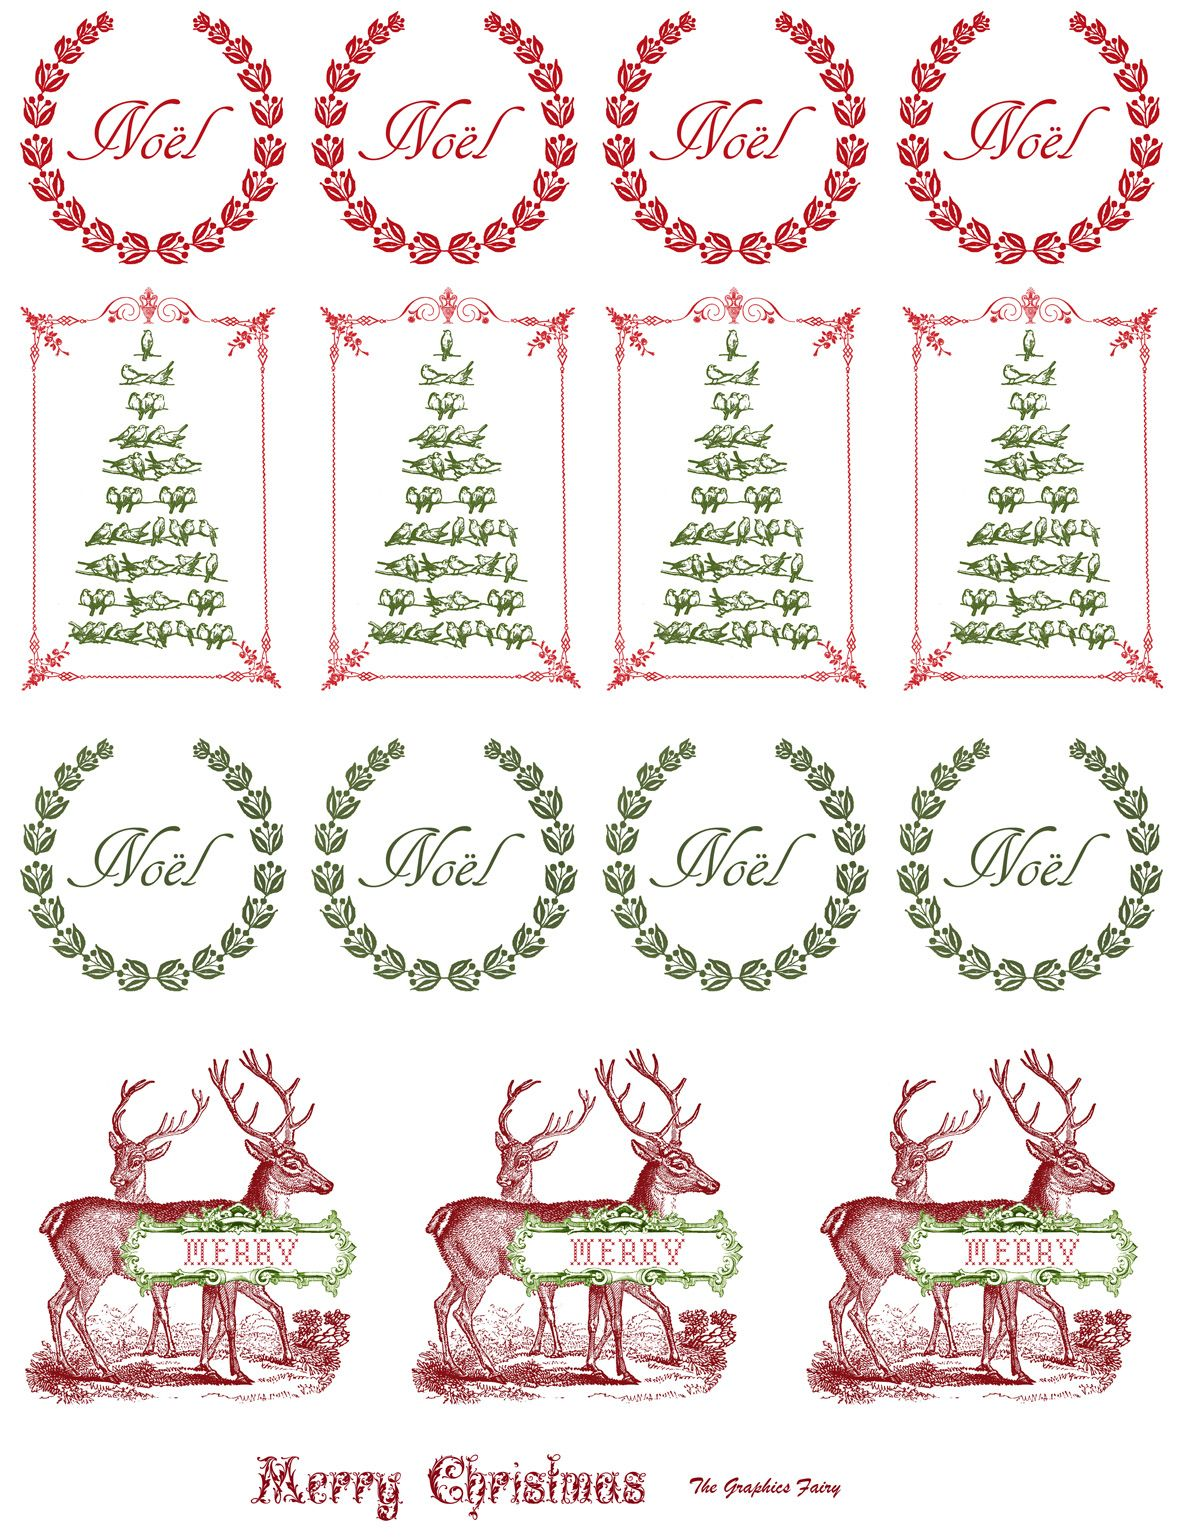 Free printable vintage christmas cards - Free Printable Vintage Christmas Stickers From The Graphic Fairy Print On Our Full Sheet